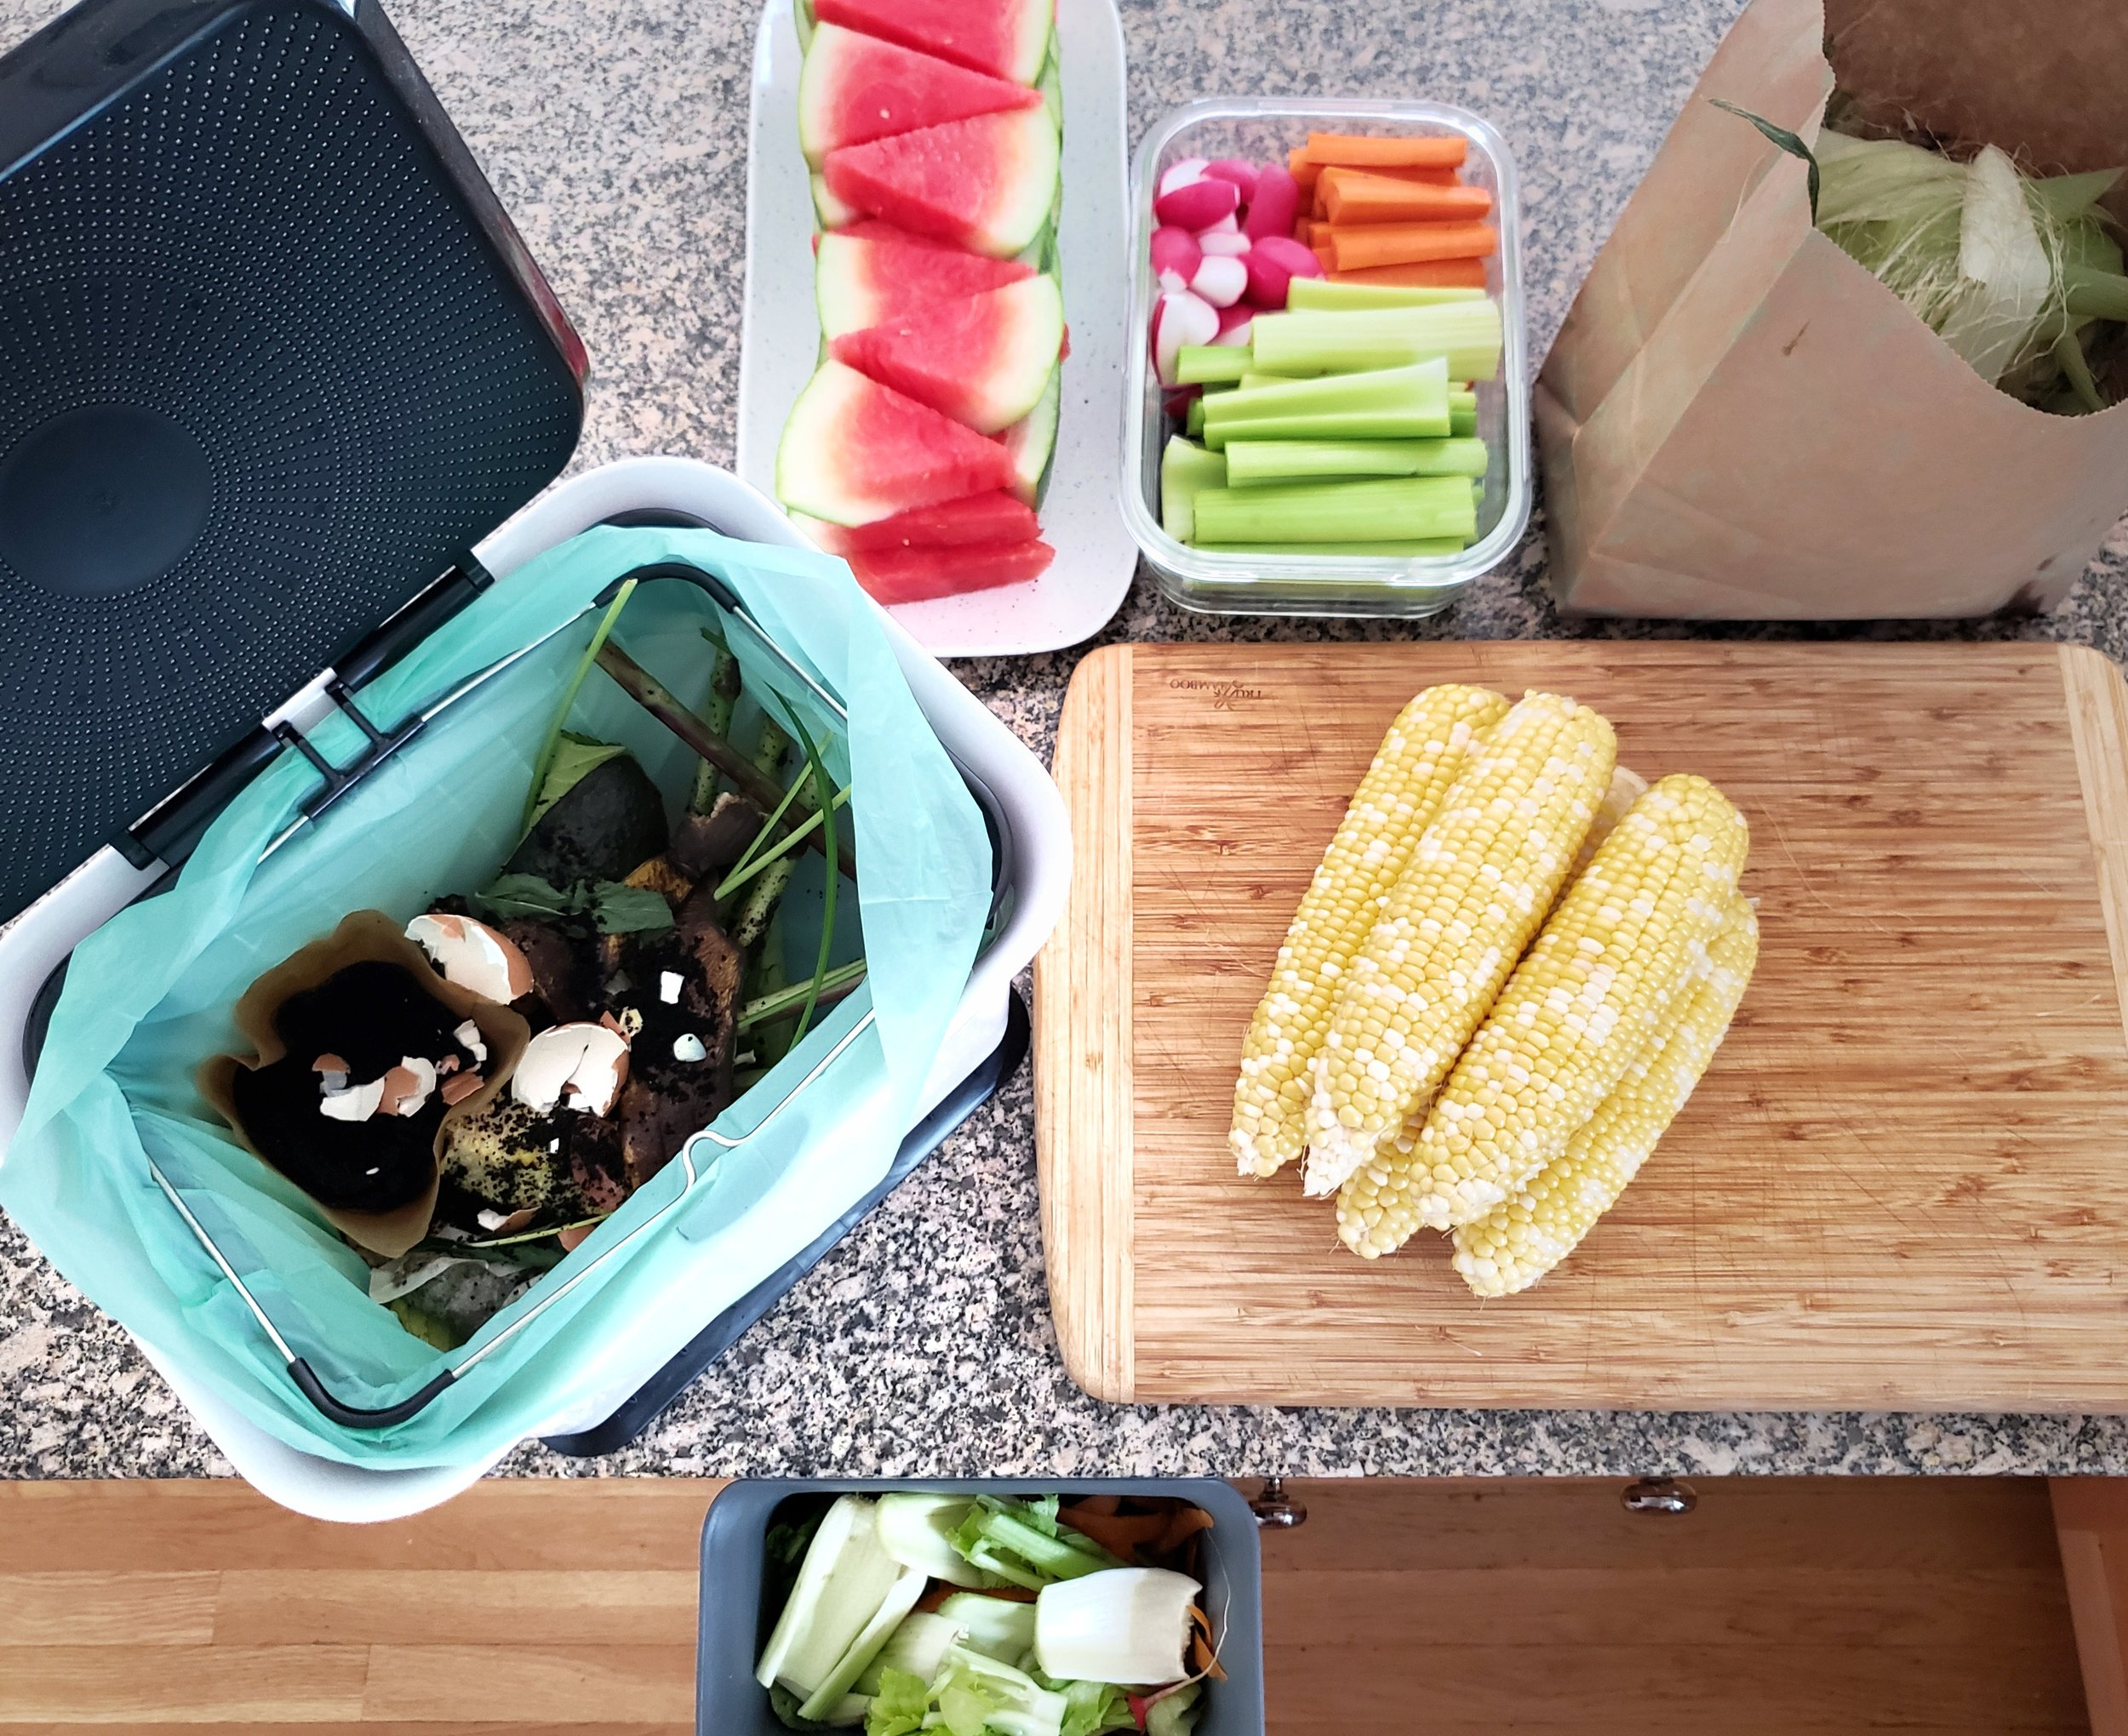 Composting while veggie prepping situation in full effect with Full Circle products; image via Christine Koh